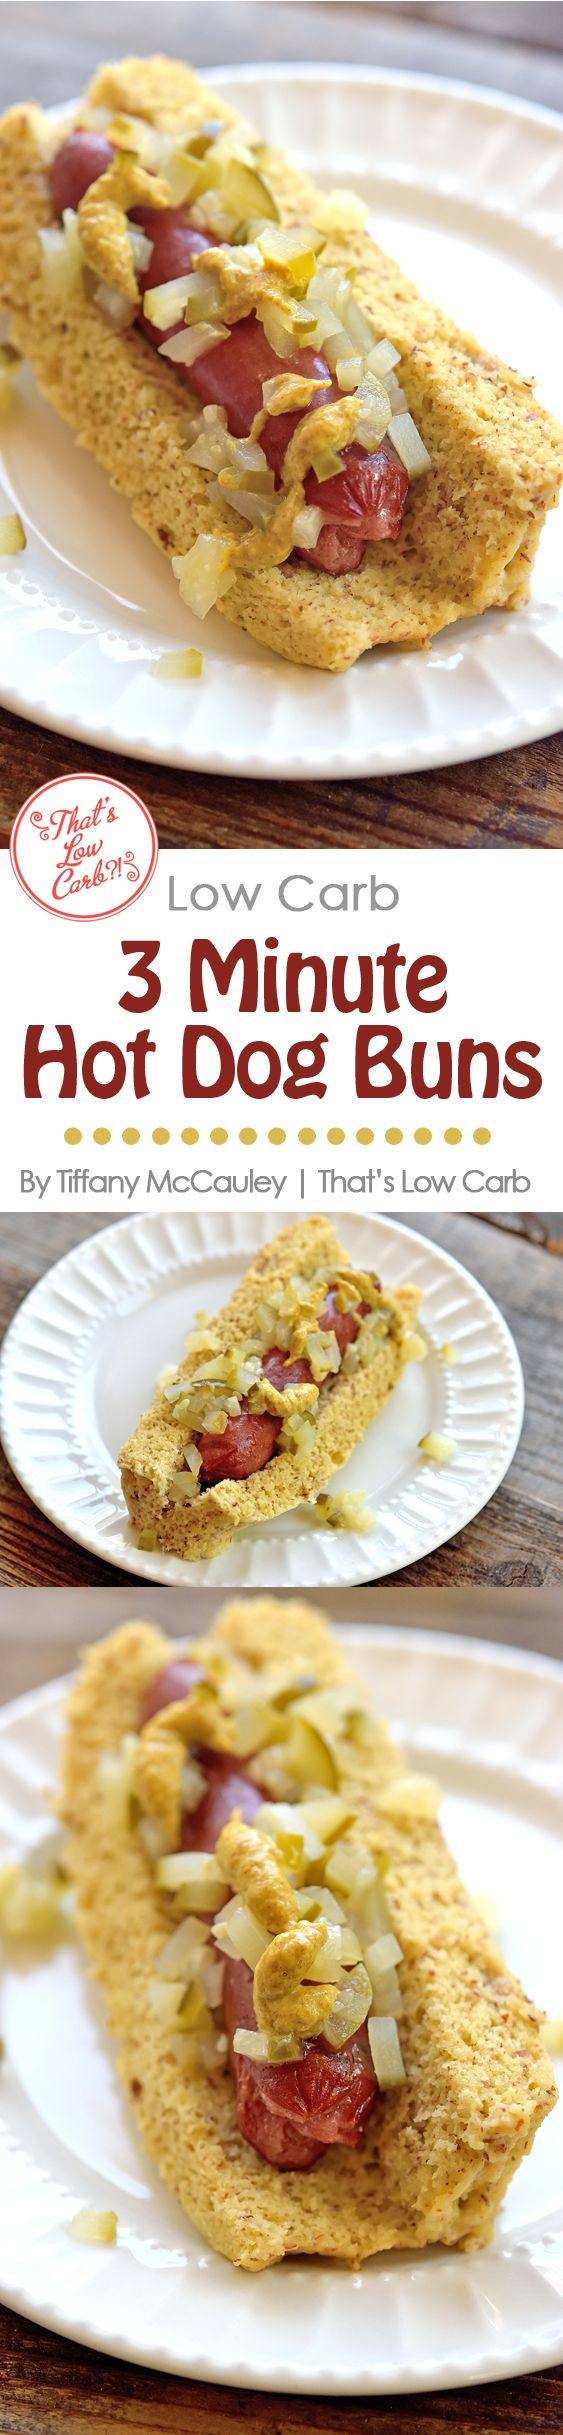 low carb hot dog buns recipe pinterest hot dogs hamburger buns and buns. Black Bedroom Furniture Sets. Home Design Ideas